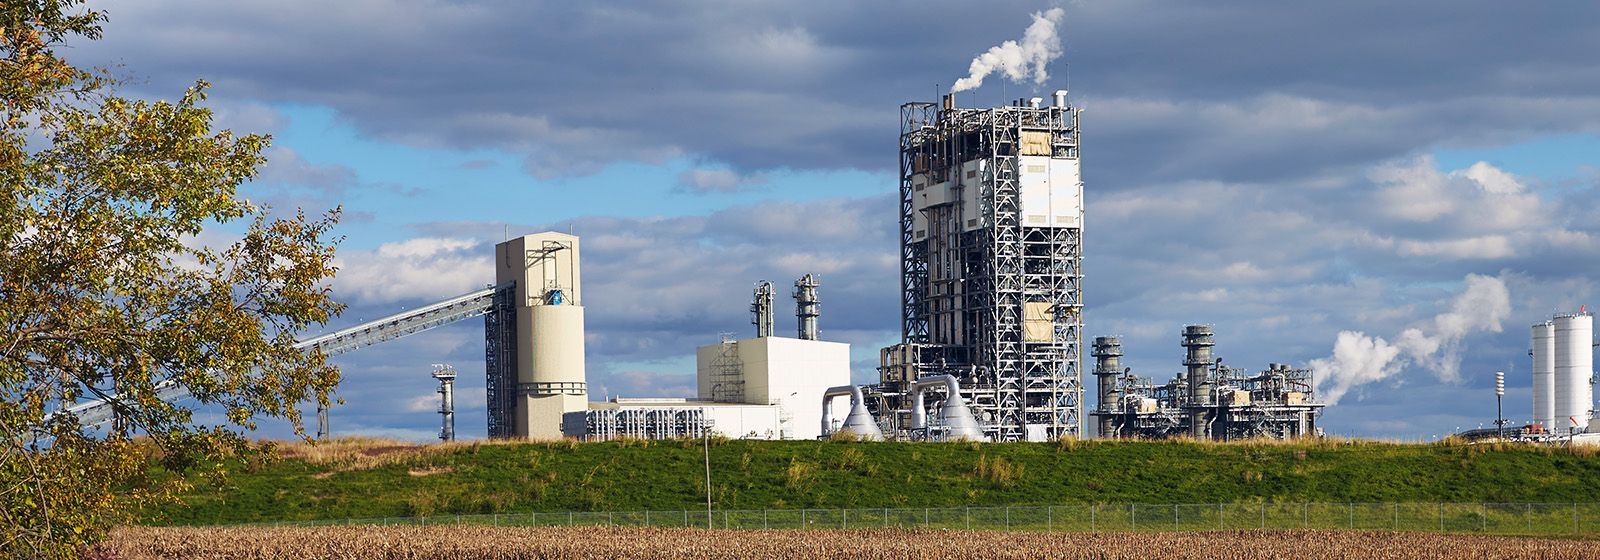 Clean and efficient power plant supports community